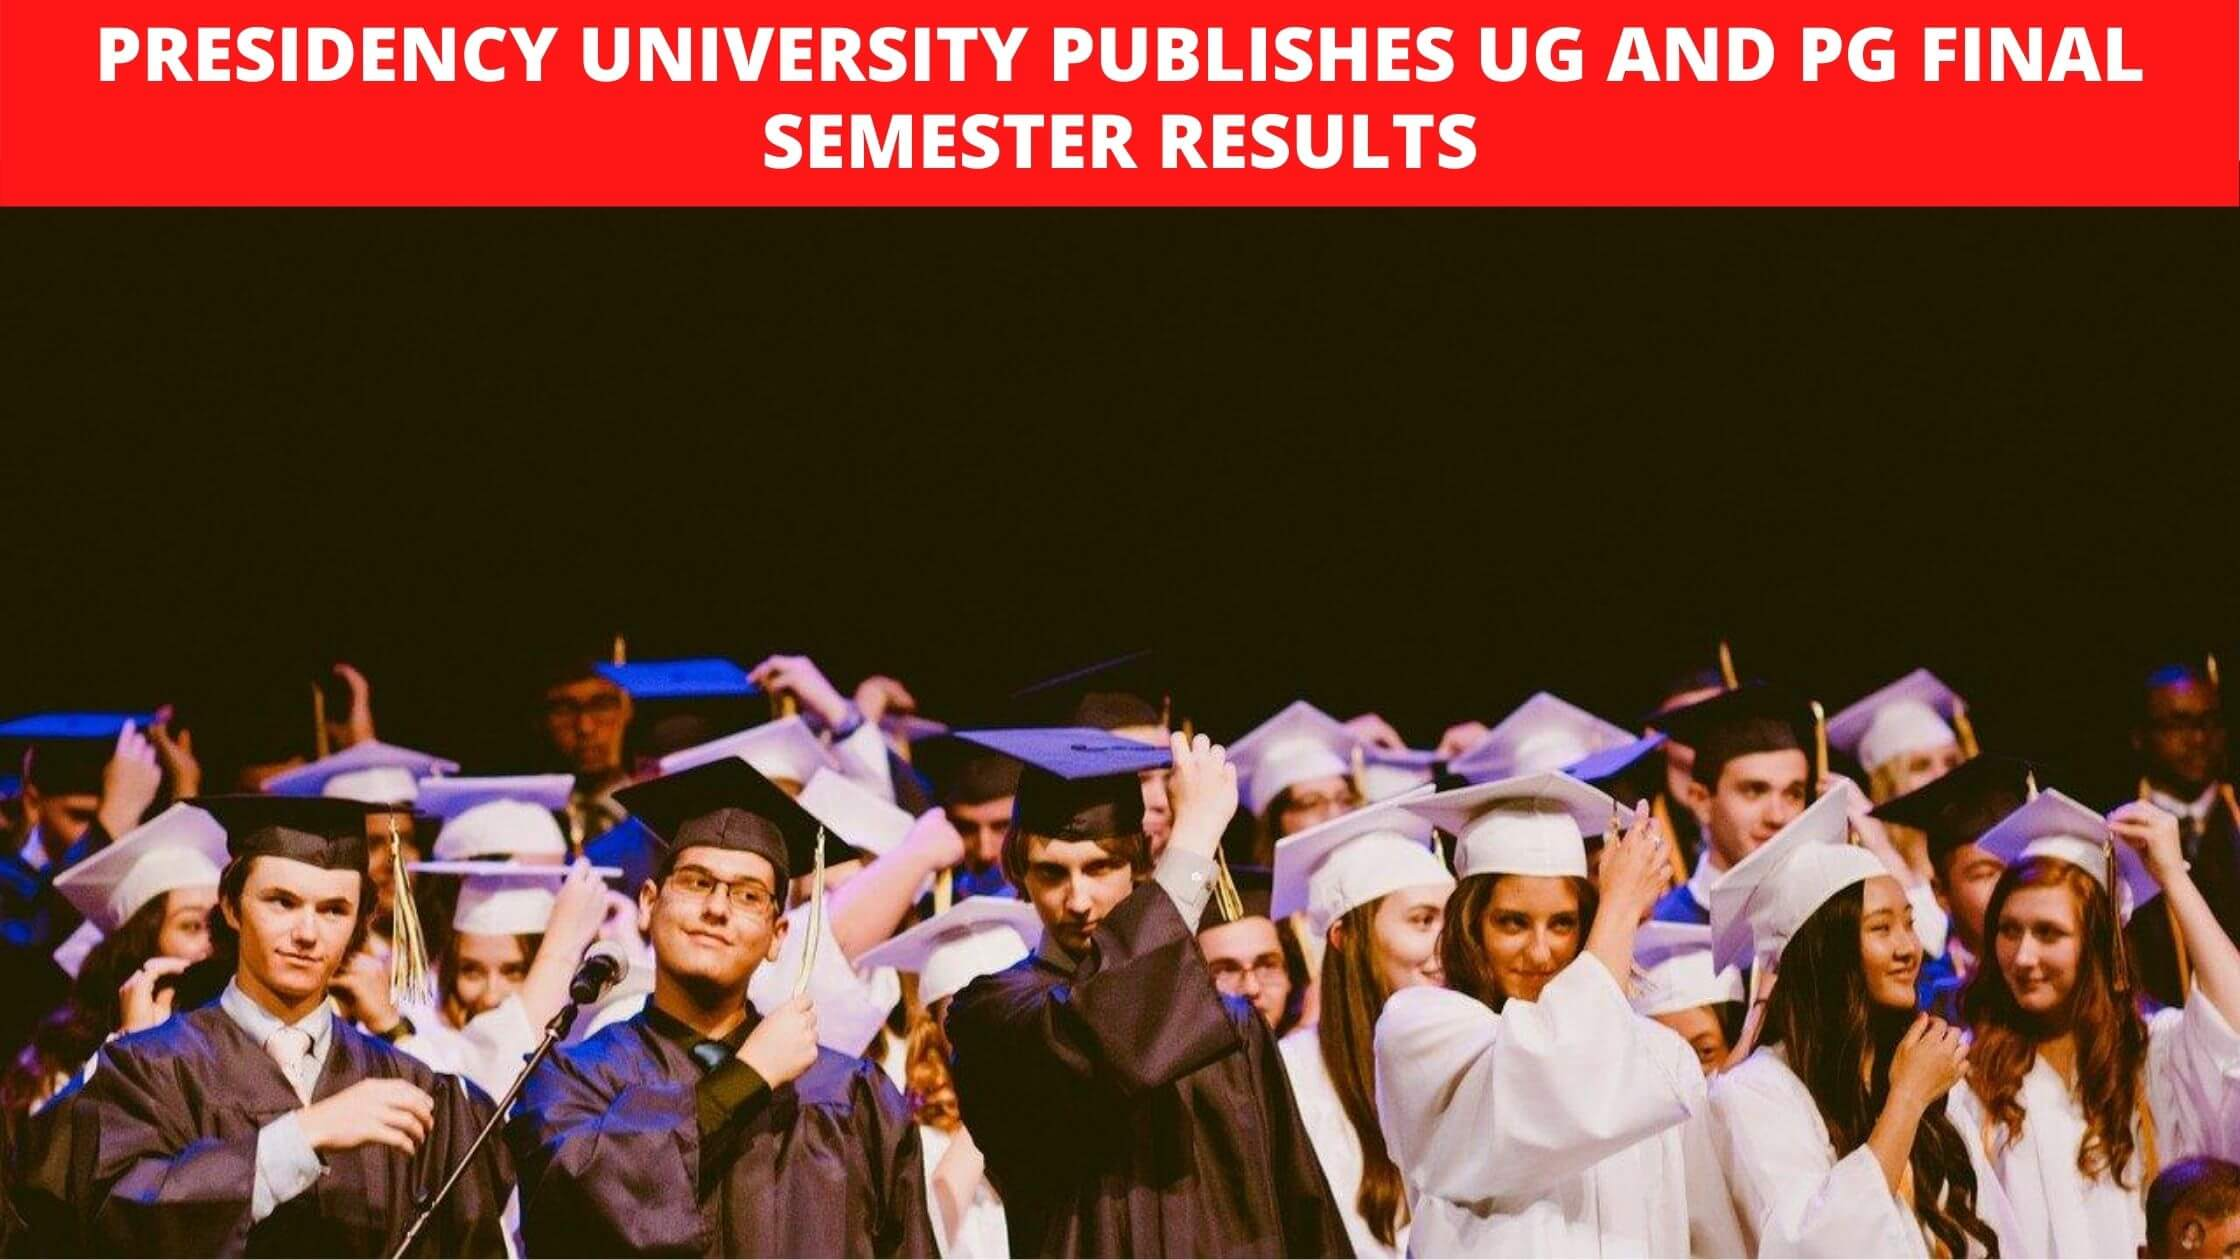 Presidency University Publishes UG And PG Final Semester Results (1)